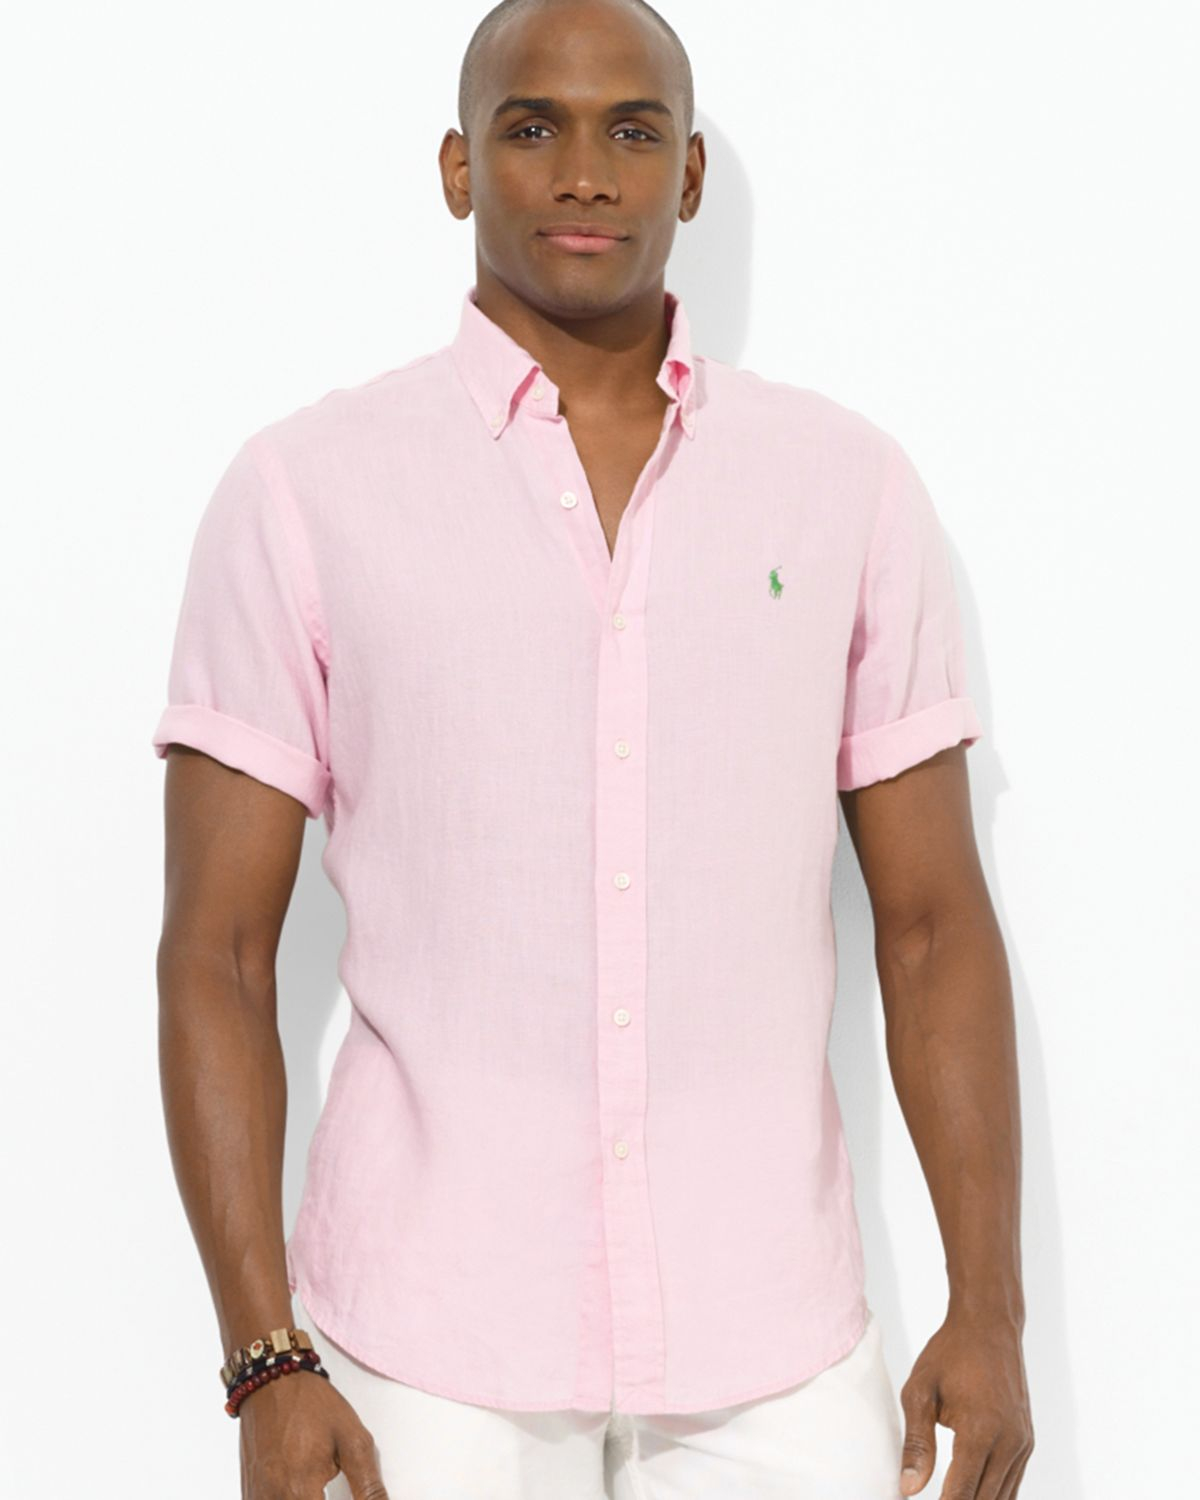 089a3c41f Ralph Lauren Custom Fit Short Sleeved Linen Sport Shirt in Pink for ...